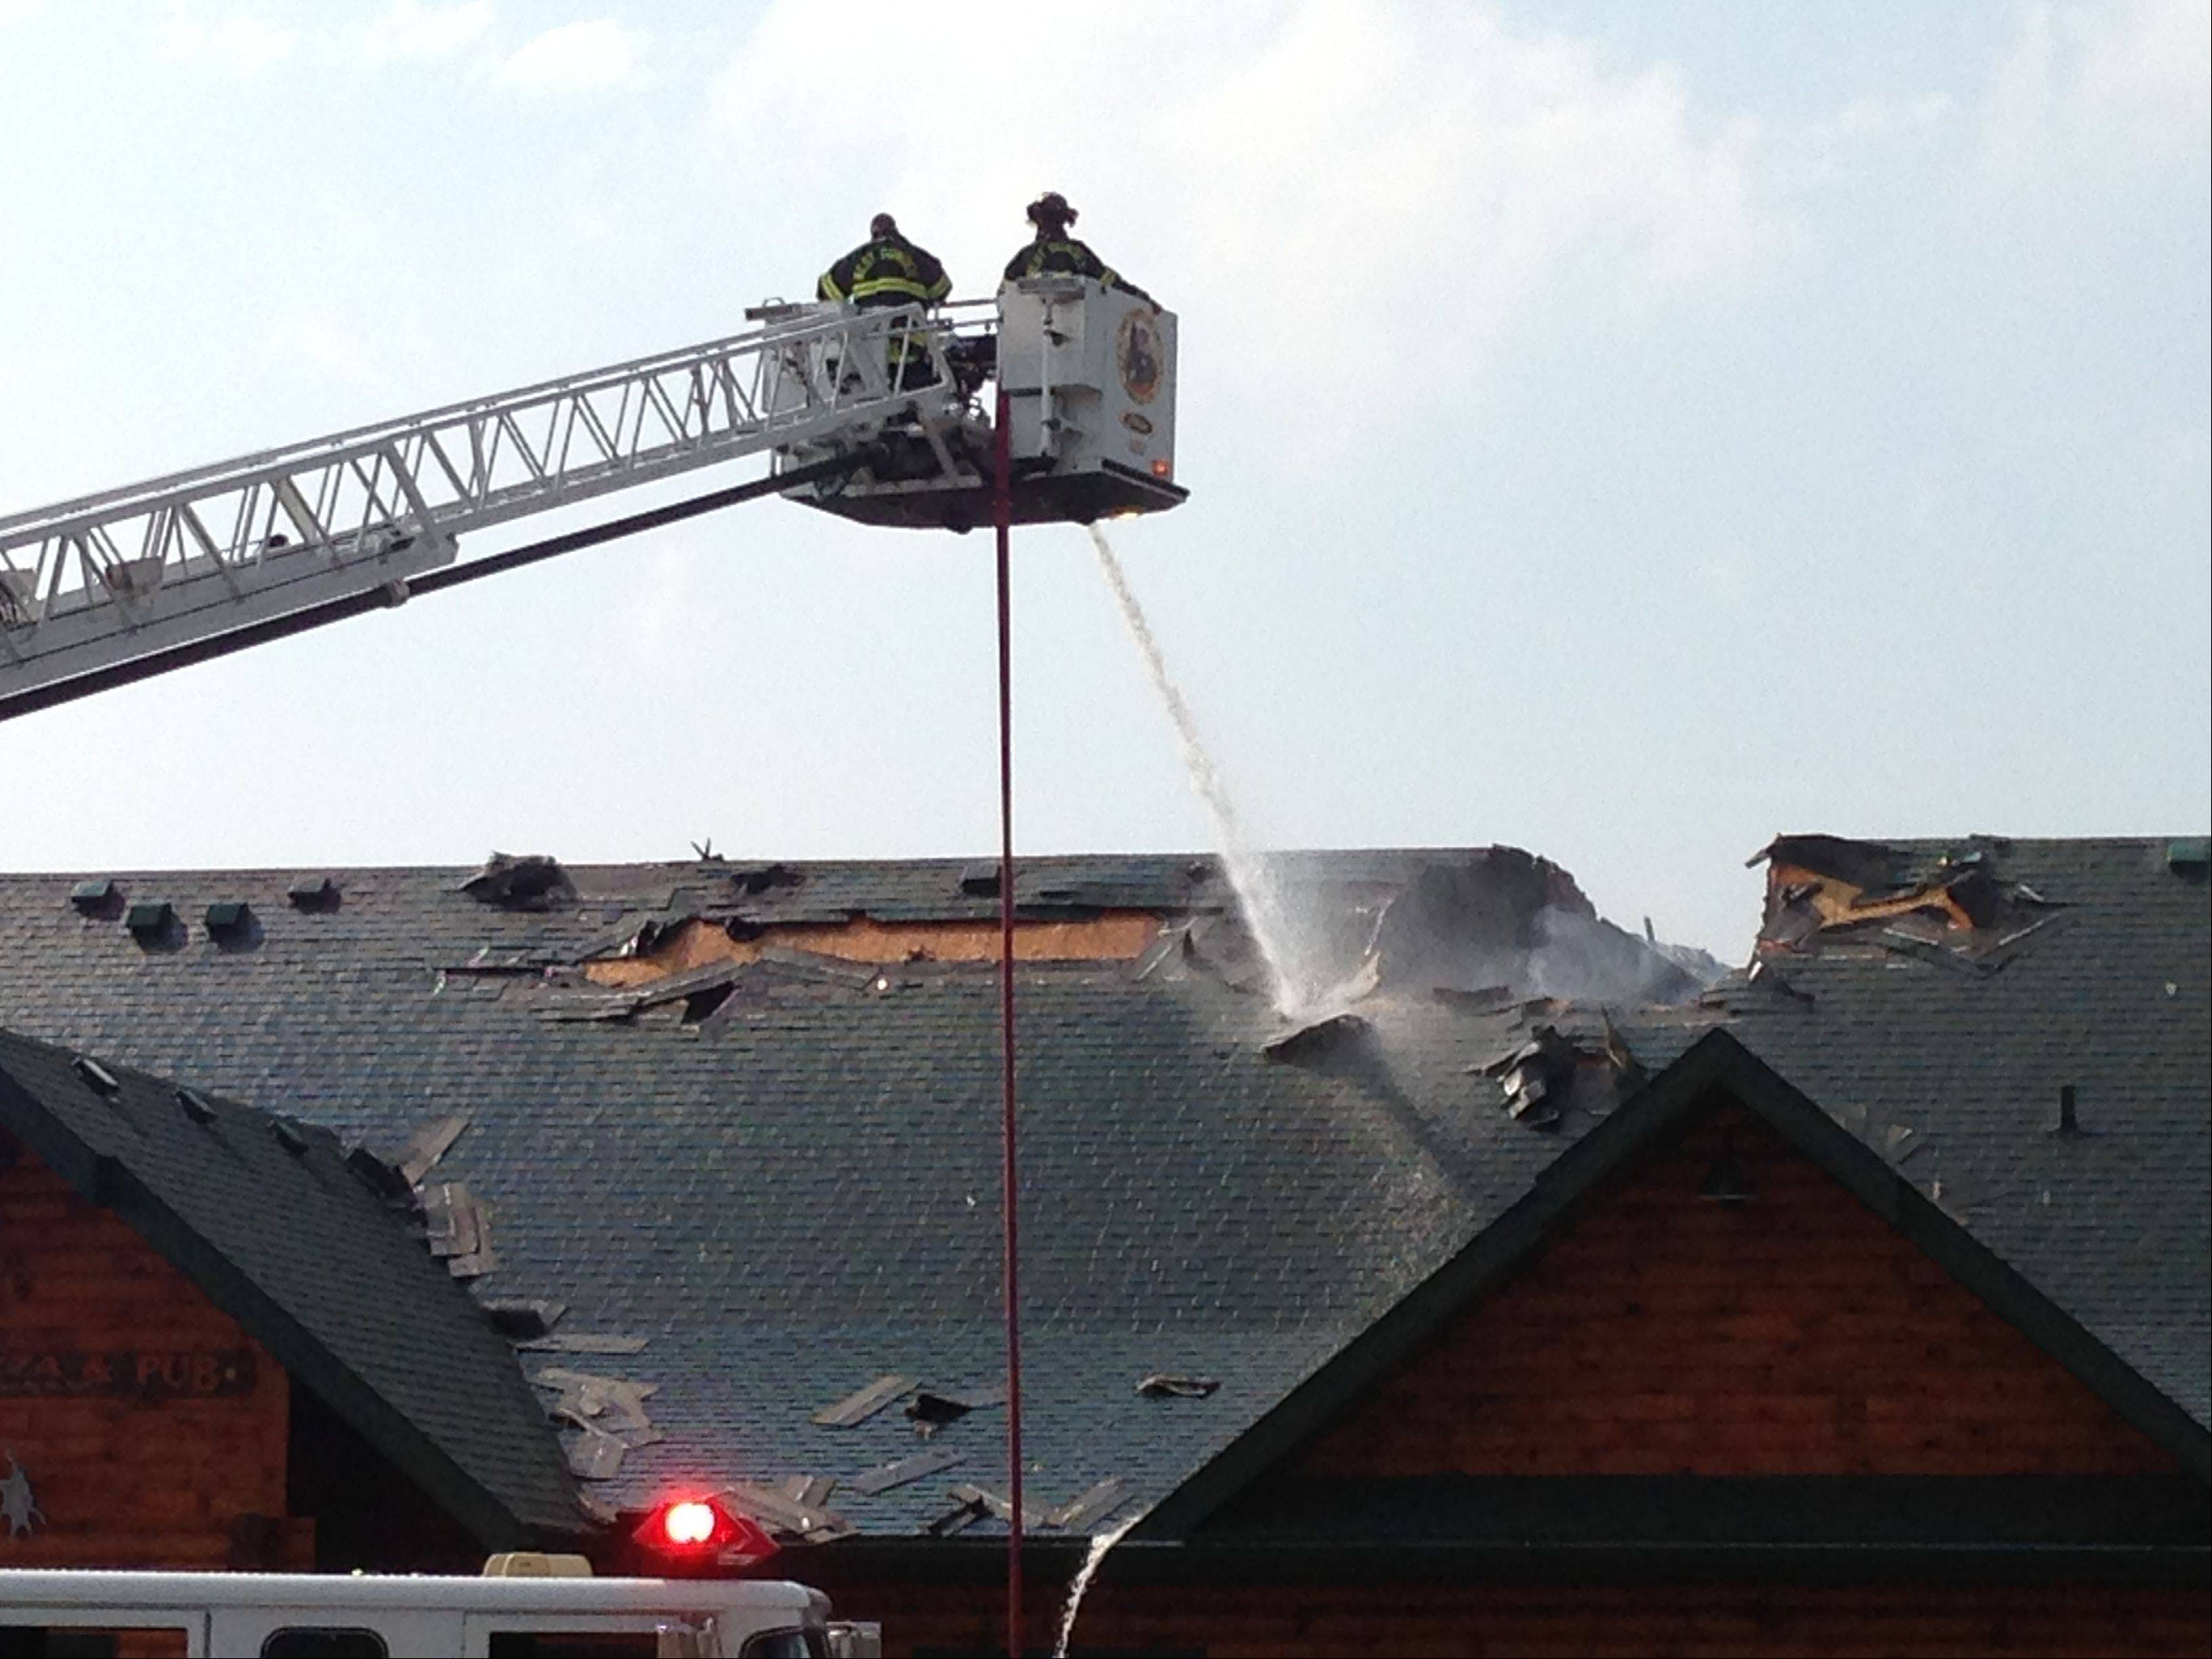 Fire crews work to control the fire Thursday at Village Pizza & Pub at 145 N. Kennedy Drive in Carpentersville. The cause is under investigation, and nobody was injured.